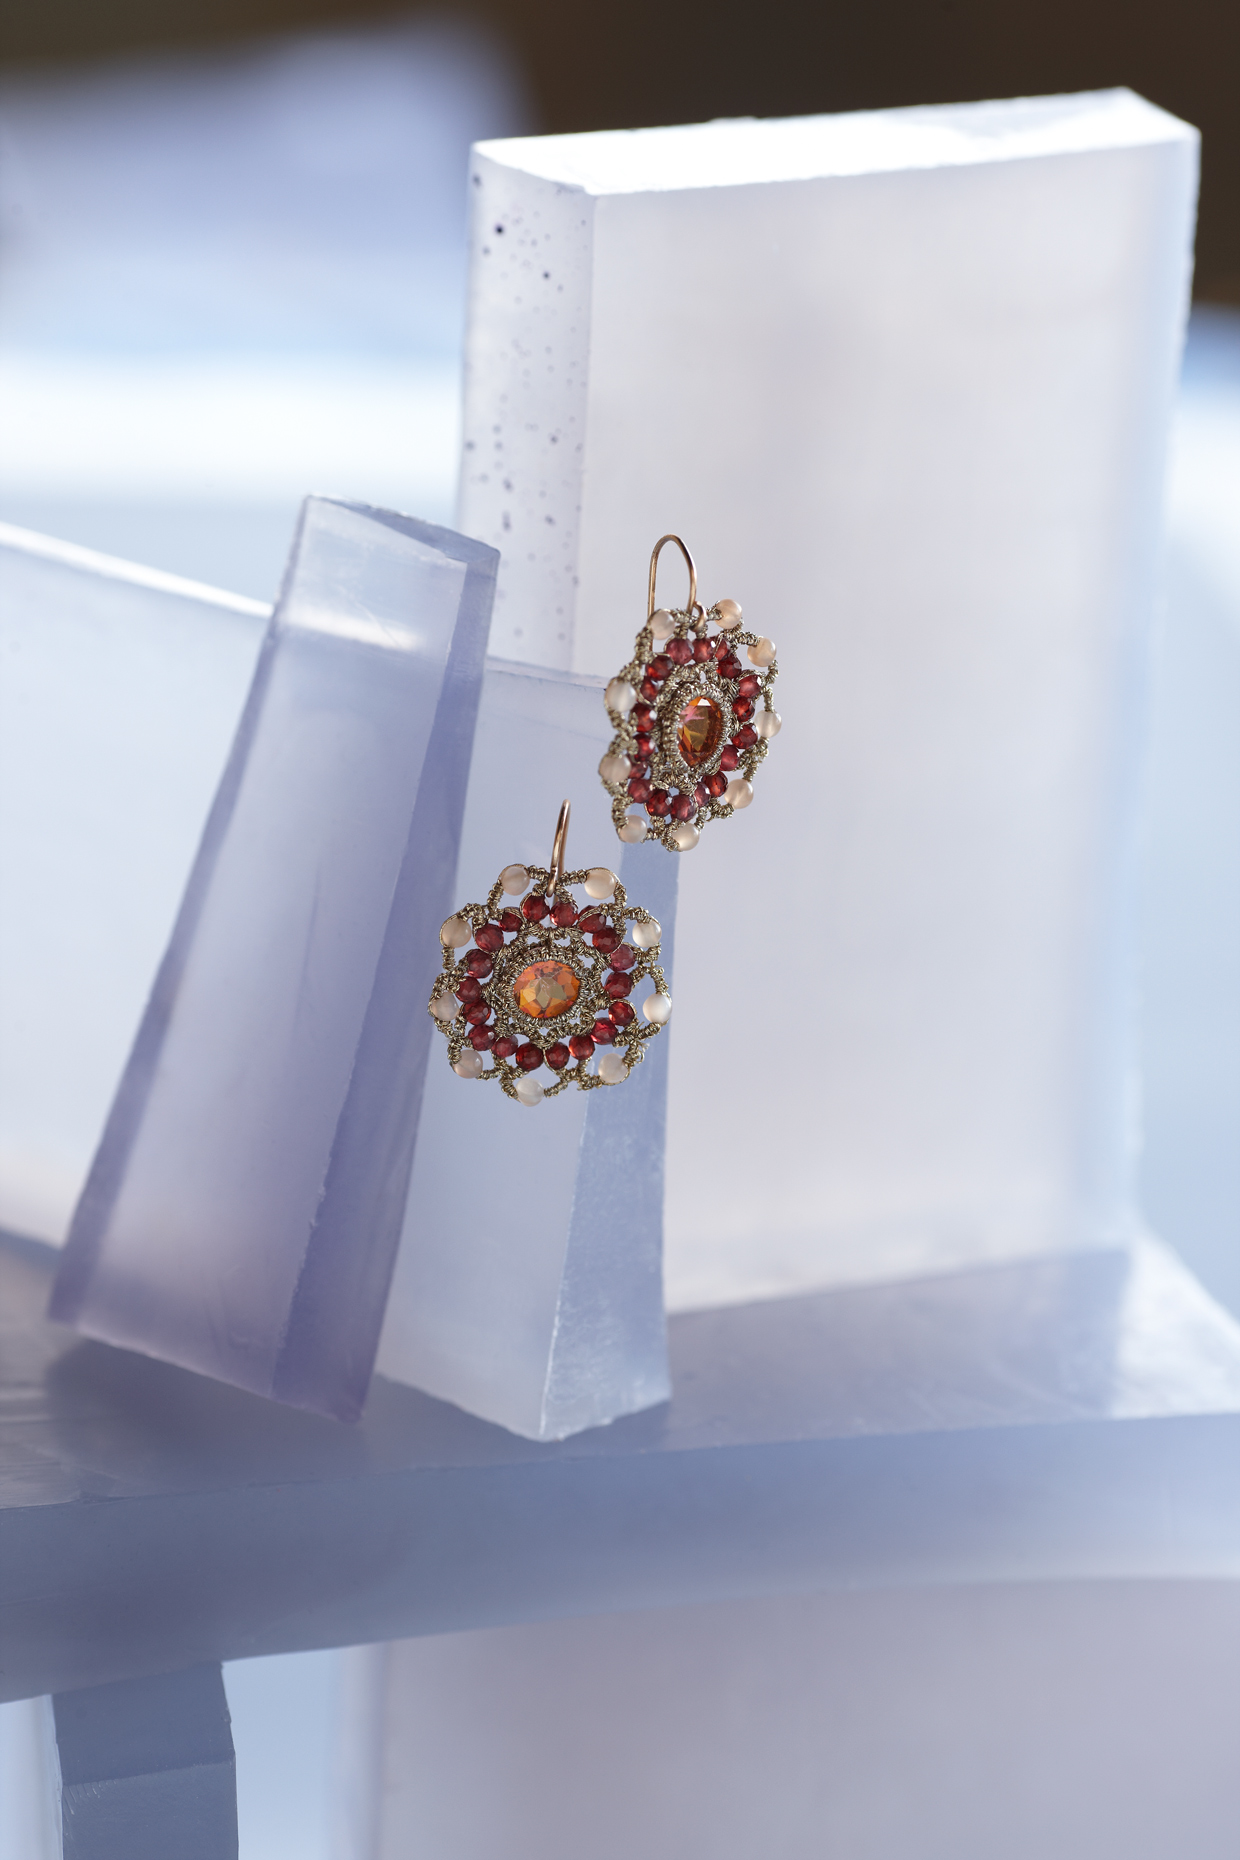 Product photography Jewelry Derek Israelsen Kaleidoscope Earrings